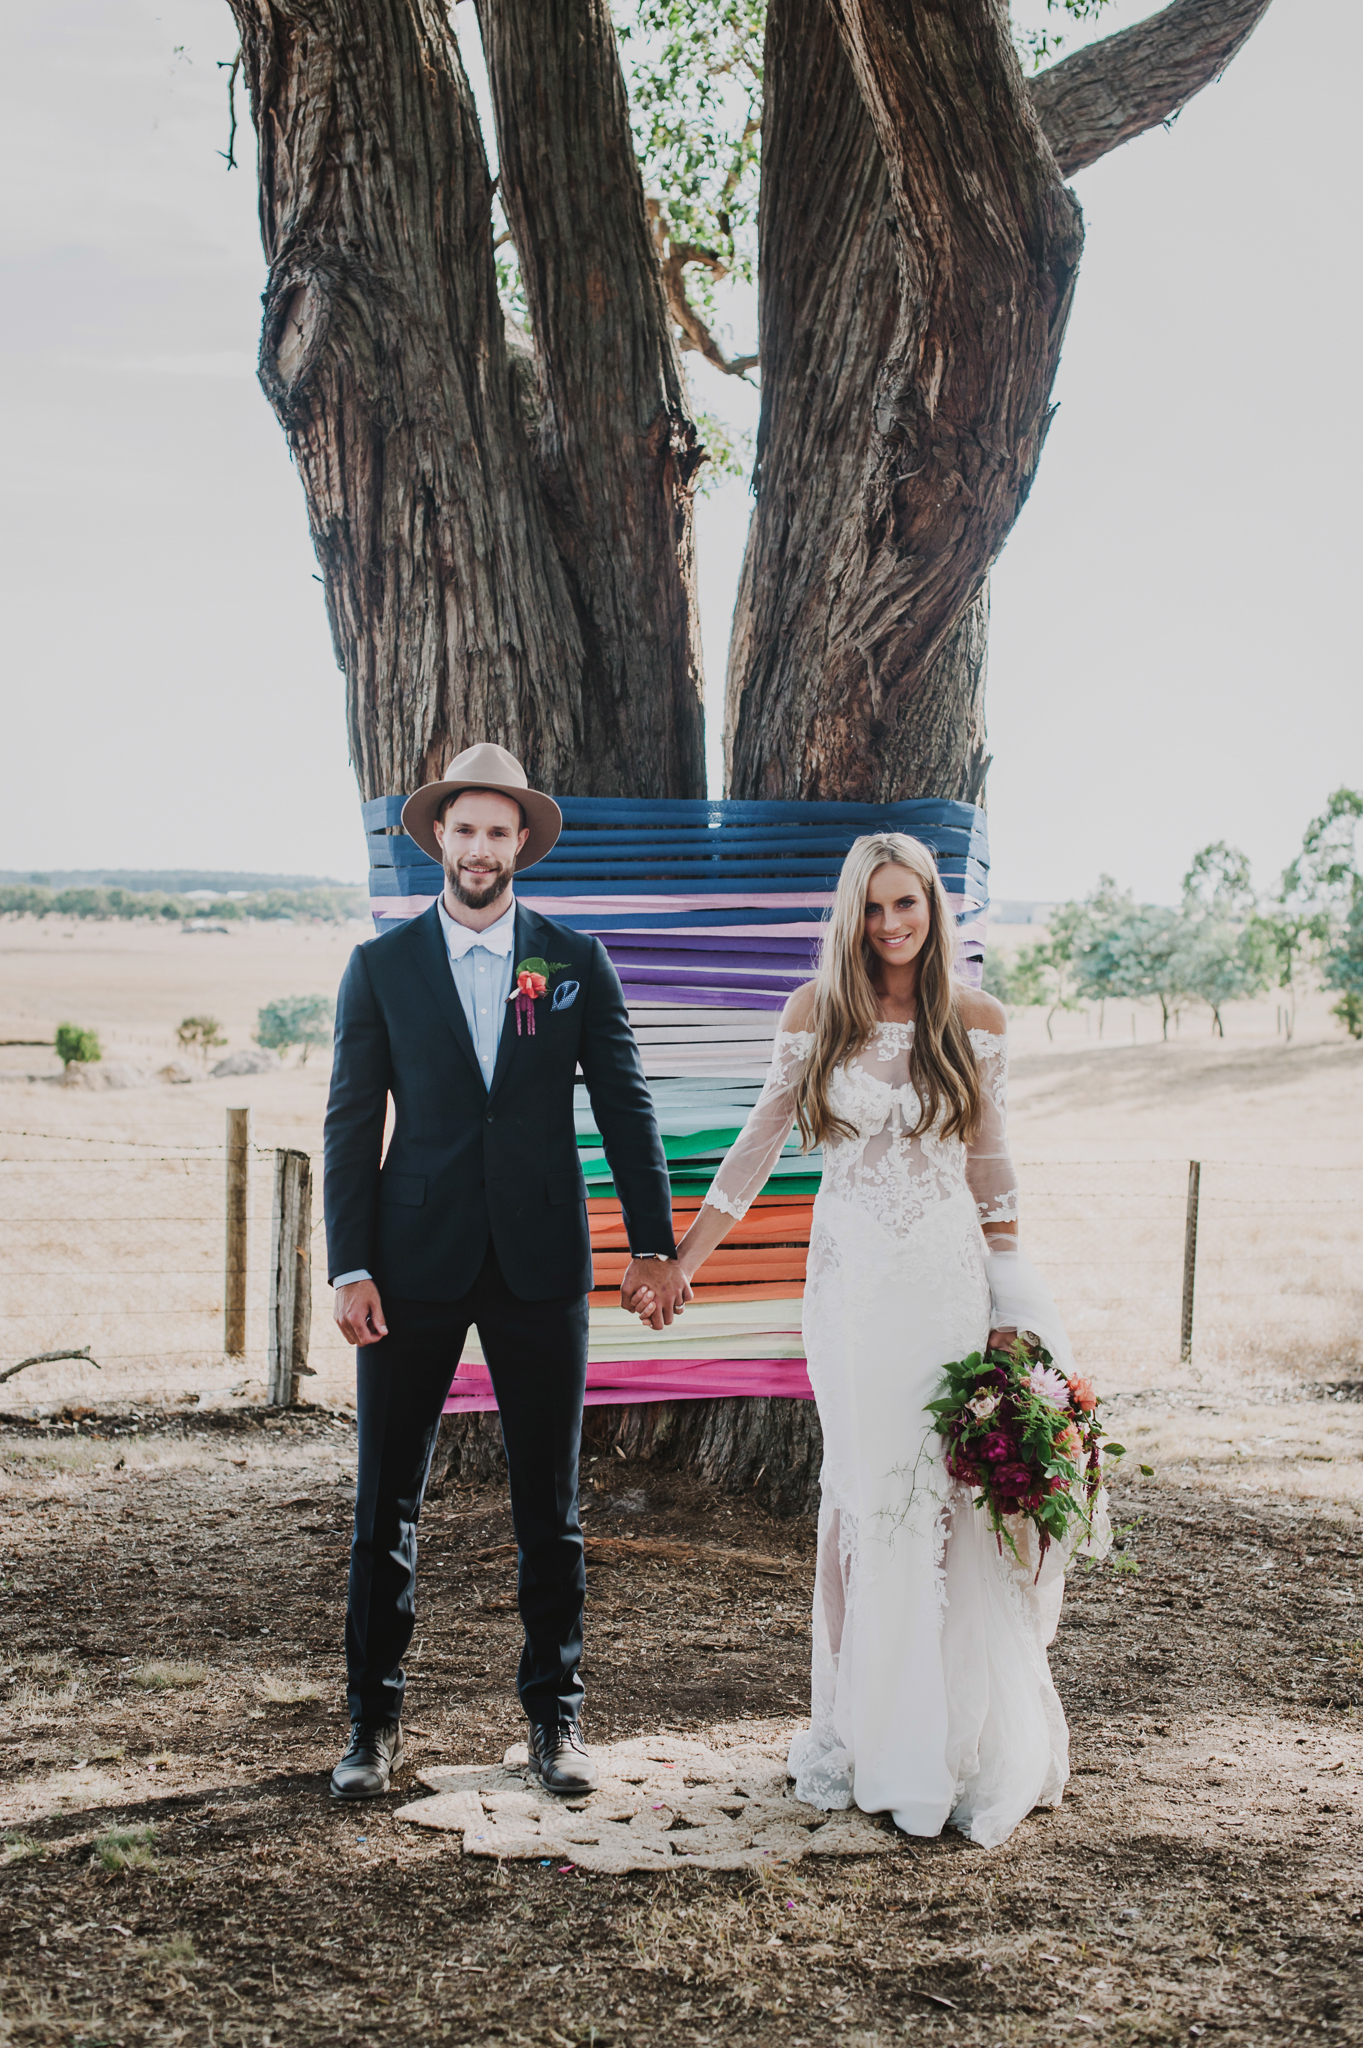 WEB Shae + Mitch Bush Festival Wedding She Takes Pictures He Makes Films Sooti Events and Styling-68.jpg